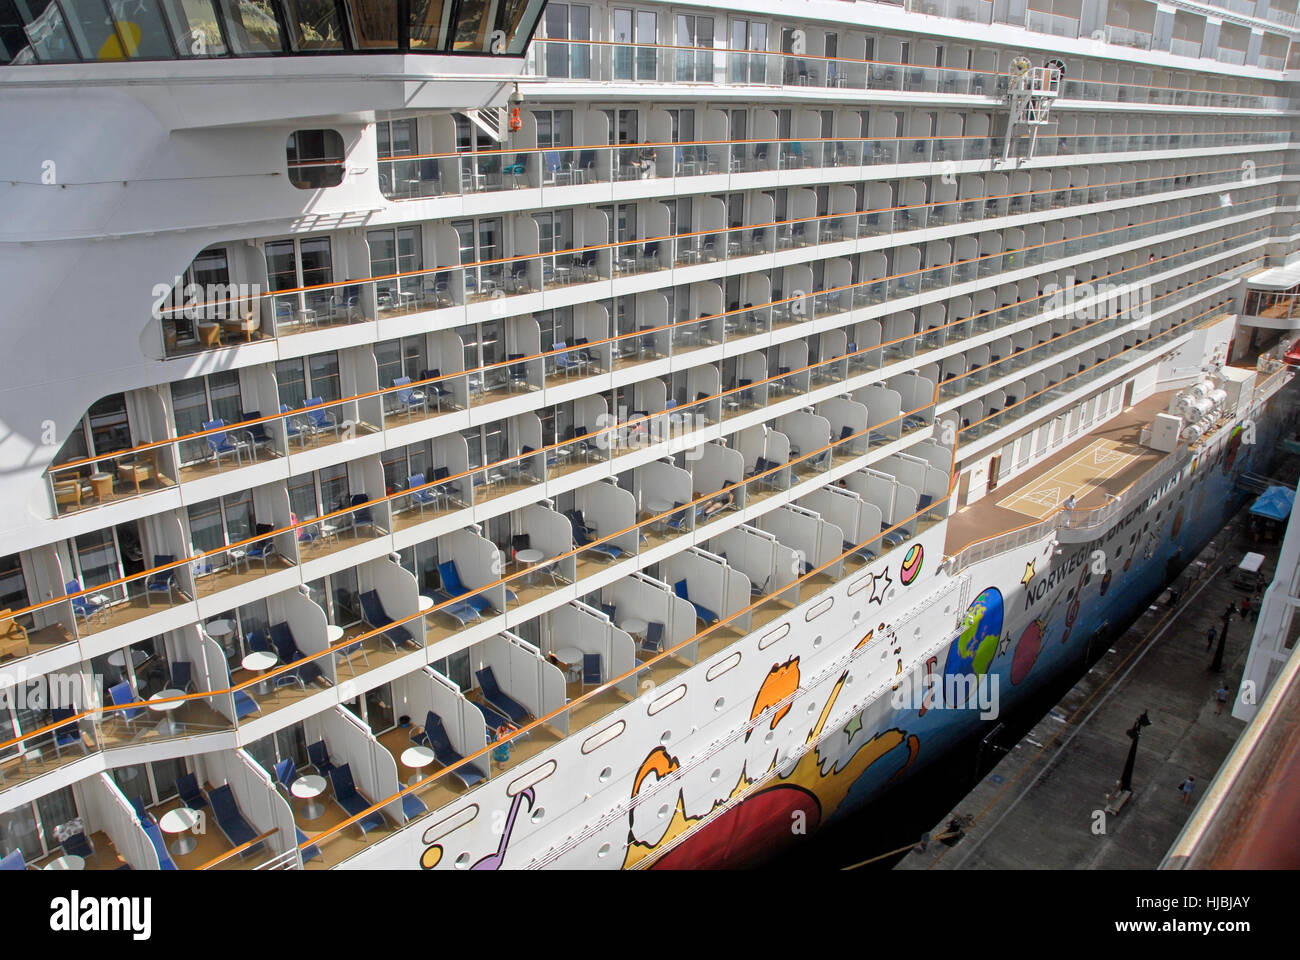 Rows of cabin balconies on large cruise liner - Stock Image